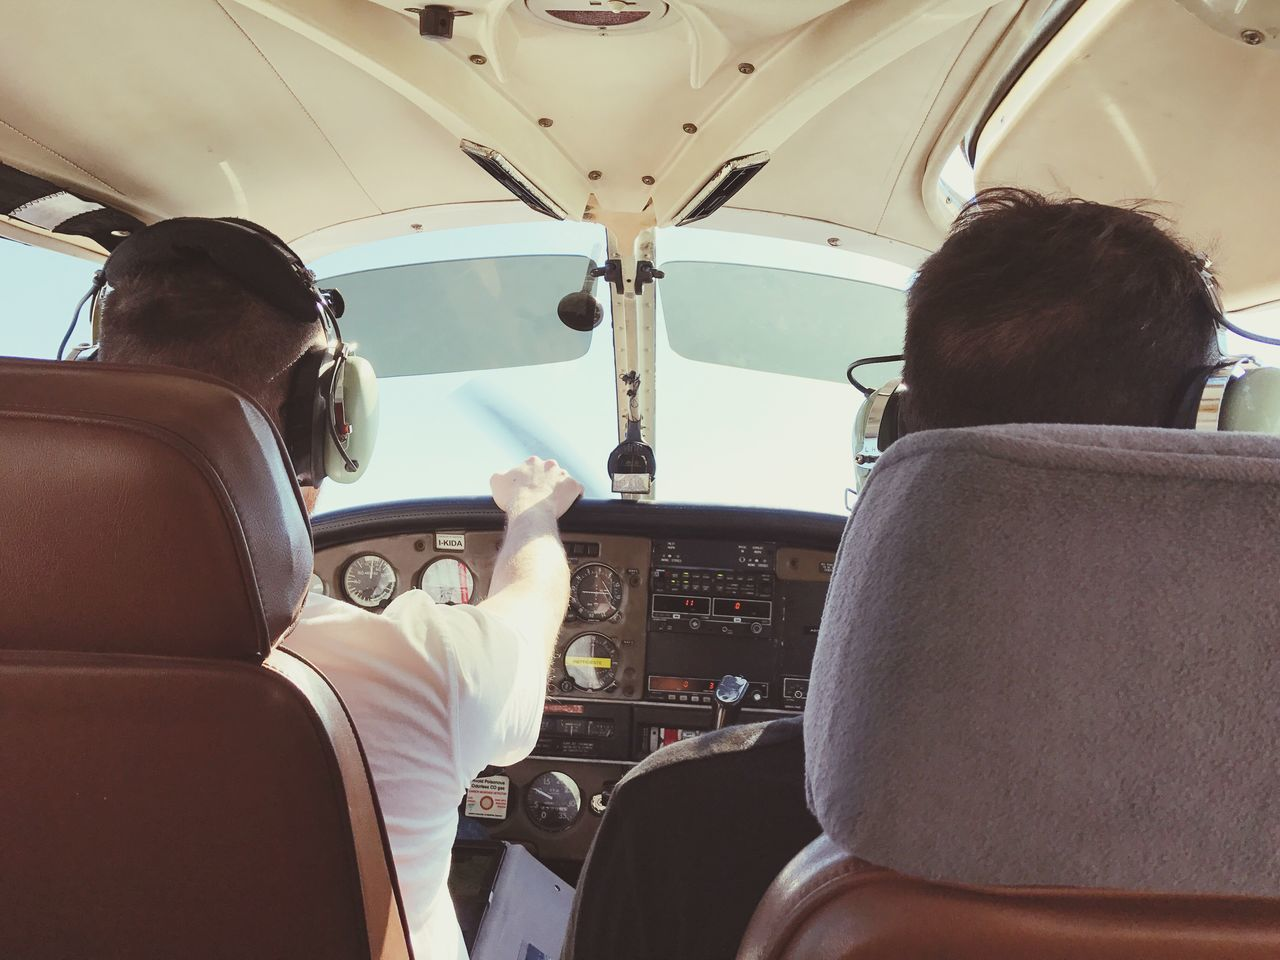 Fly Flying Thelimitisthesky Sky Vehicle Interior Airplane Men Pilot Vehicle Seat Air Vehicle Control Panel Teamwork Happiness Freedom BYOPaper! BYOPaper!